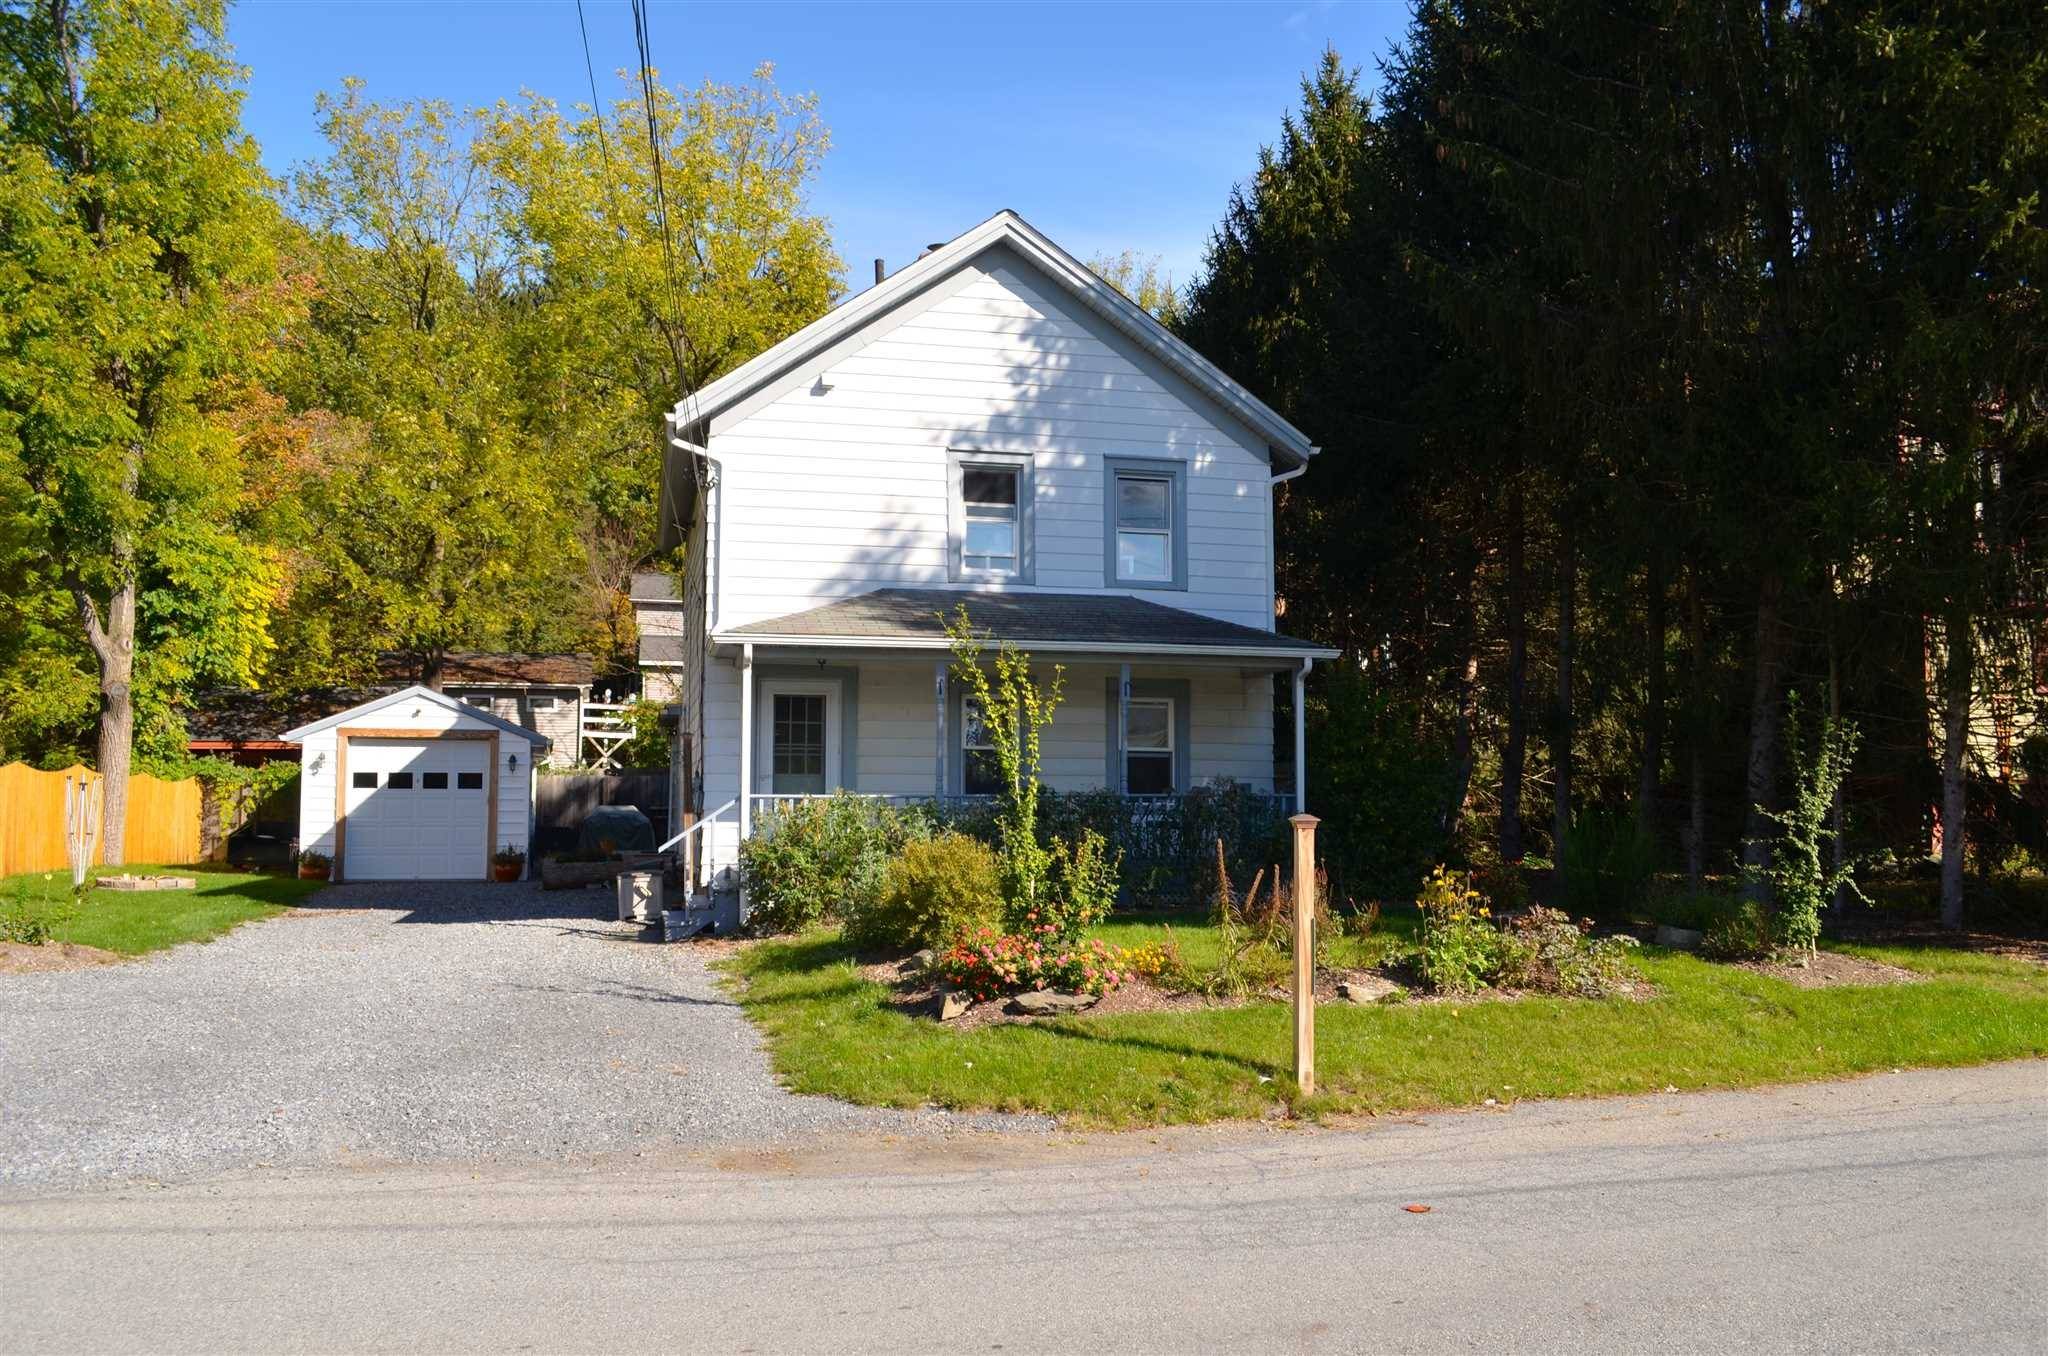 Single Family Home for Sale at 4 LEE STREET 4 LEE STREET Hyde Park, New York 12580 United States